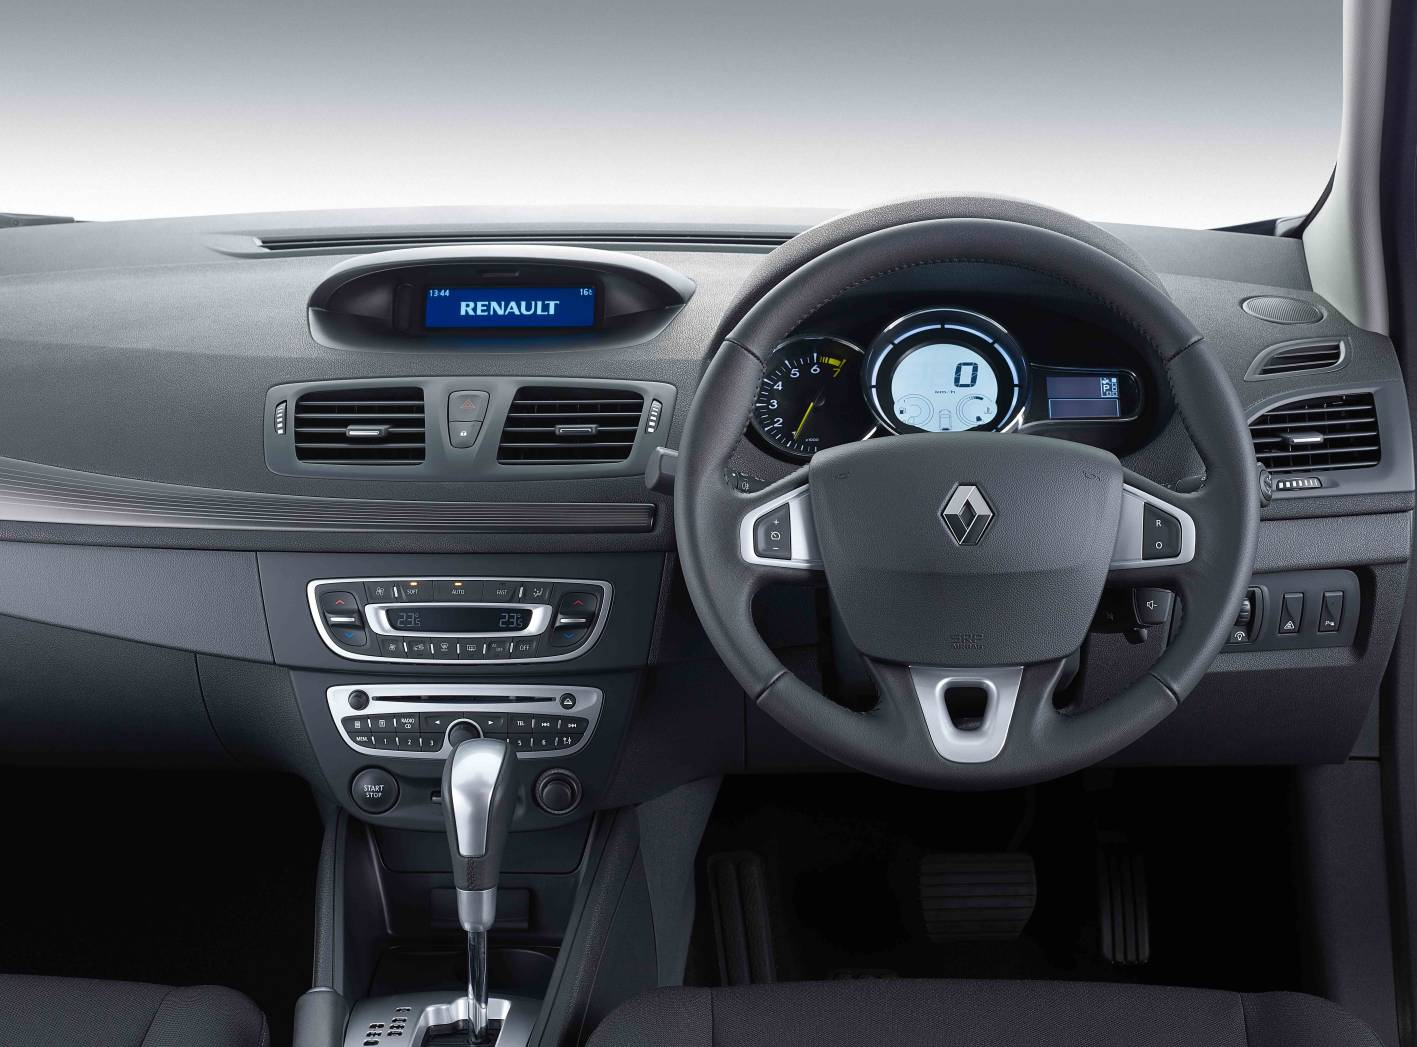 marvelous-design-of-the-black-dash-ideas-with-black-and-silver-accent-steering-wheels-ideas-as-the-renault-megane-hatch-2016-interior